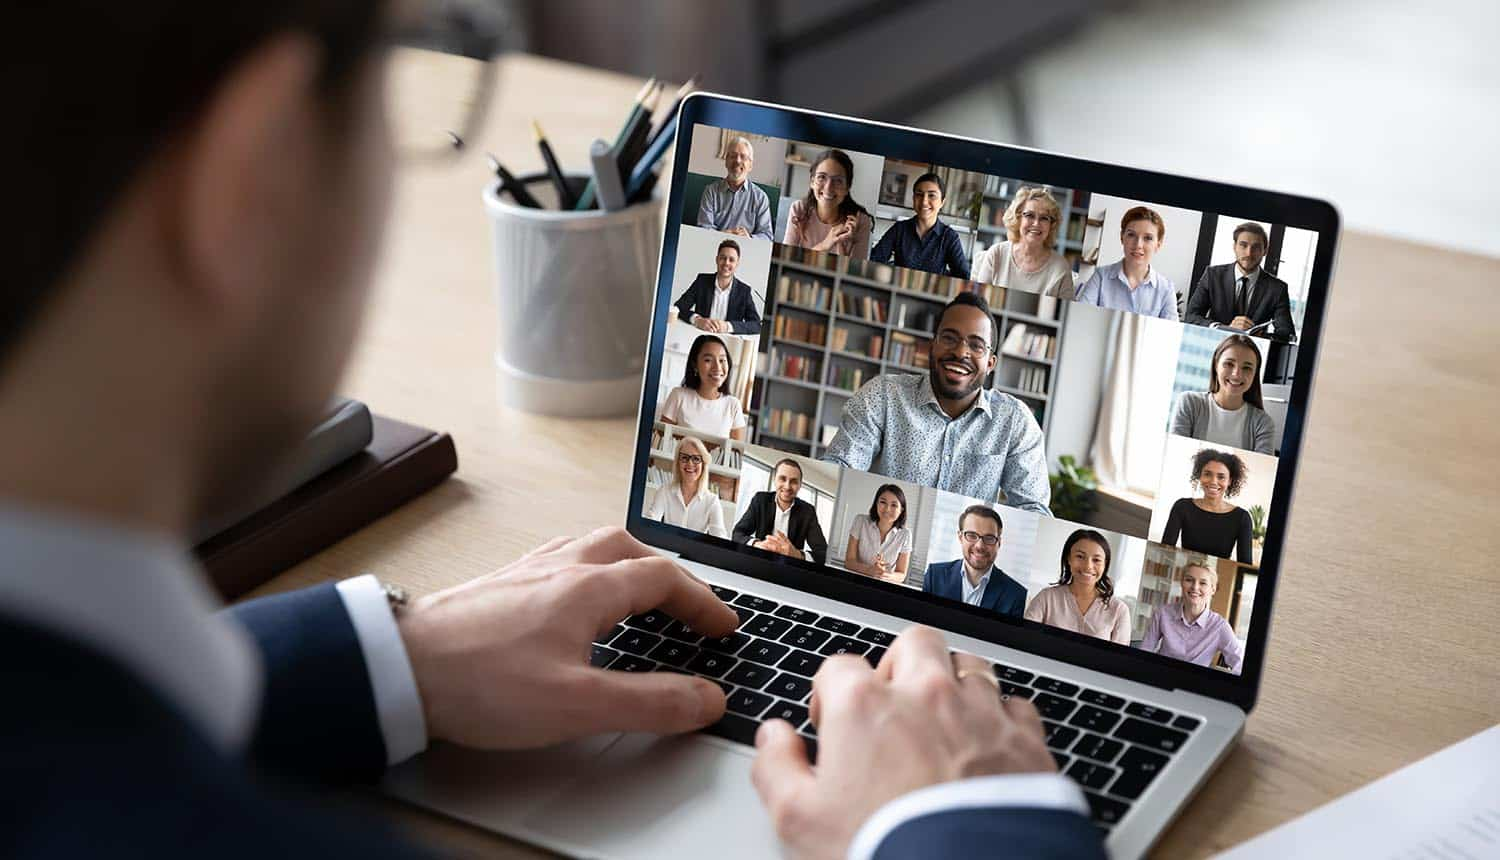 Businessman talking to team of colleagues on online video conference showing hybrid workplace